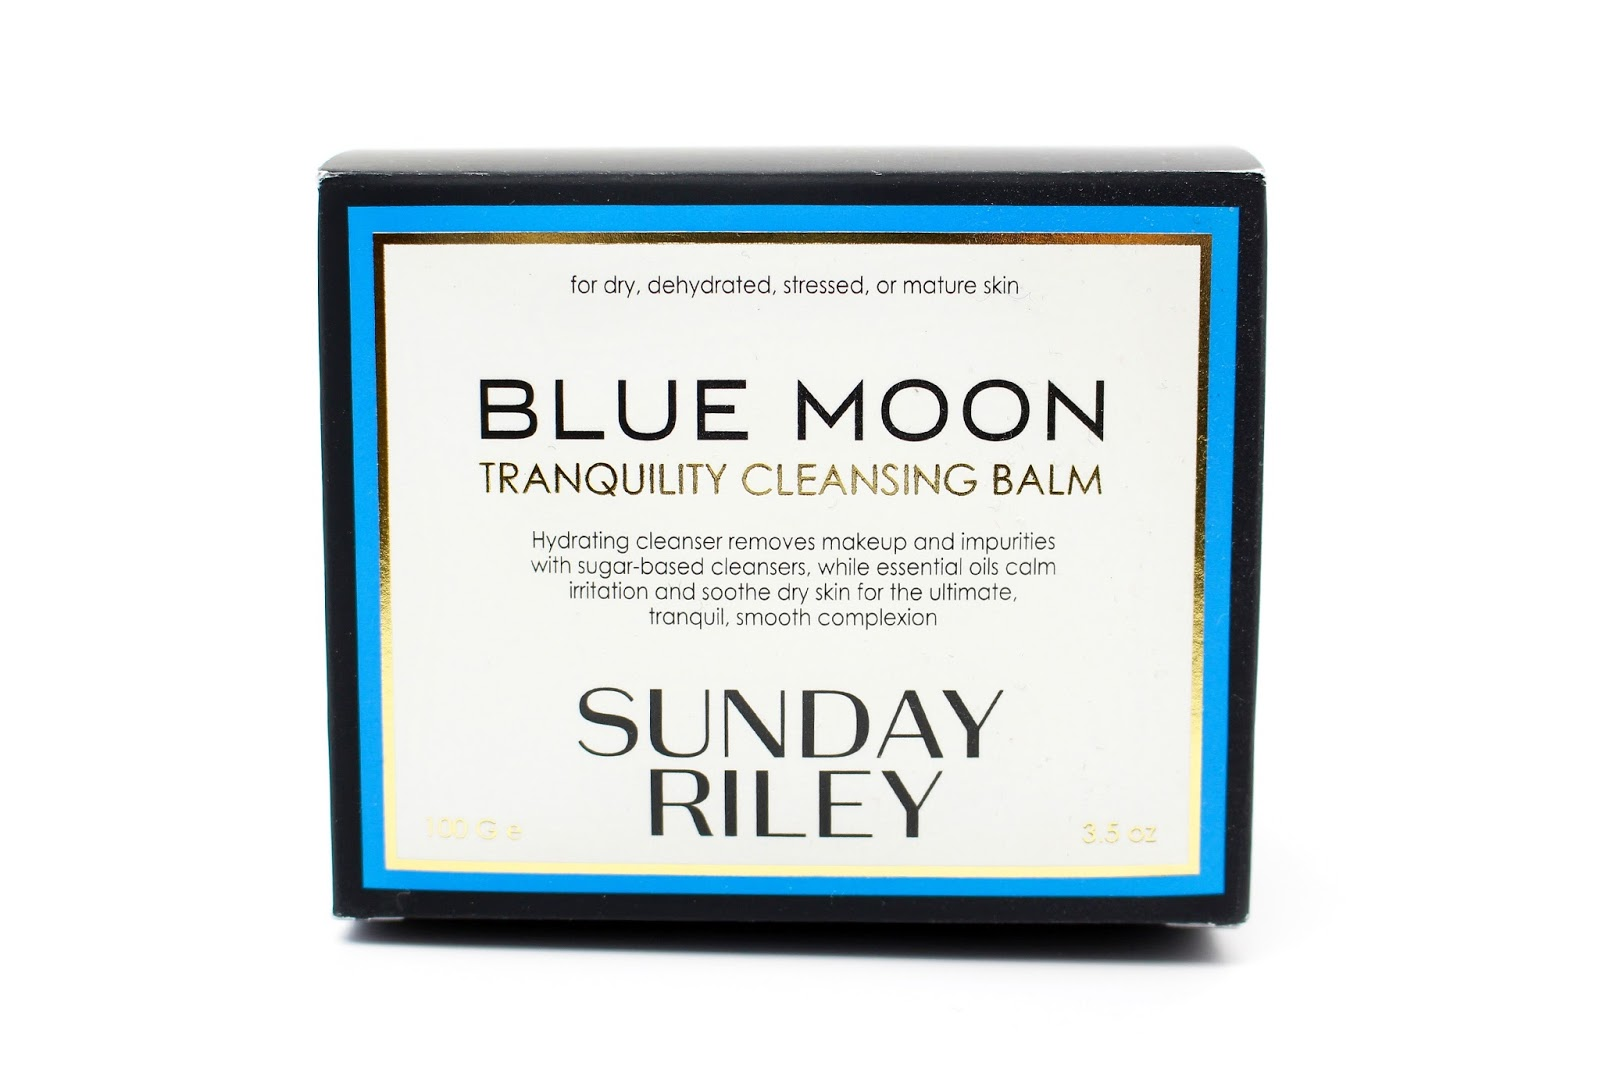 Sunday Riley Blue Moon Tranquility Cleansing Balm Review